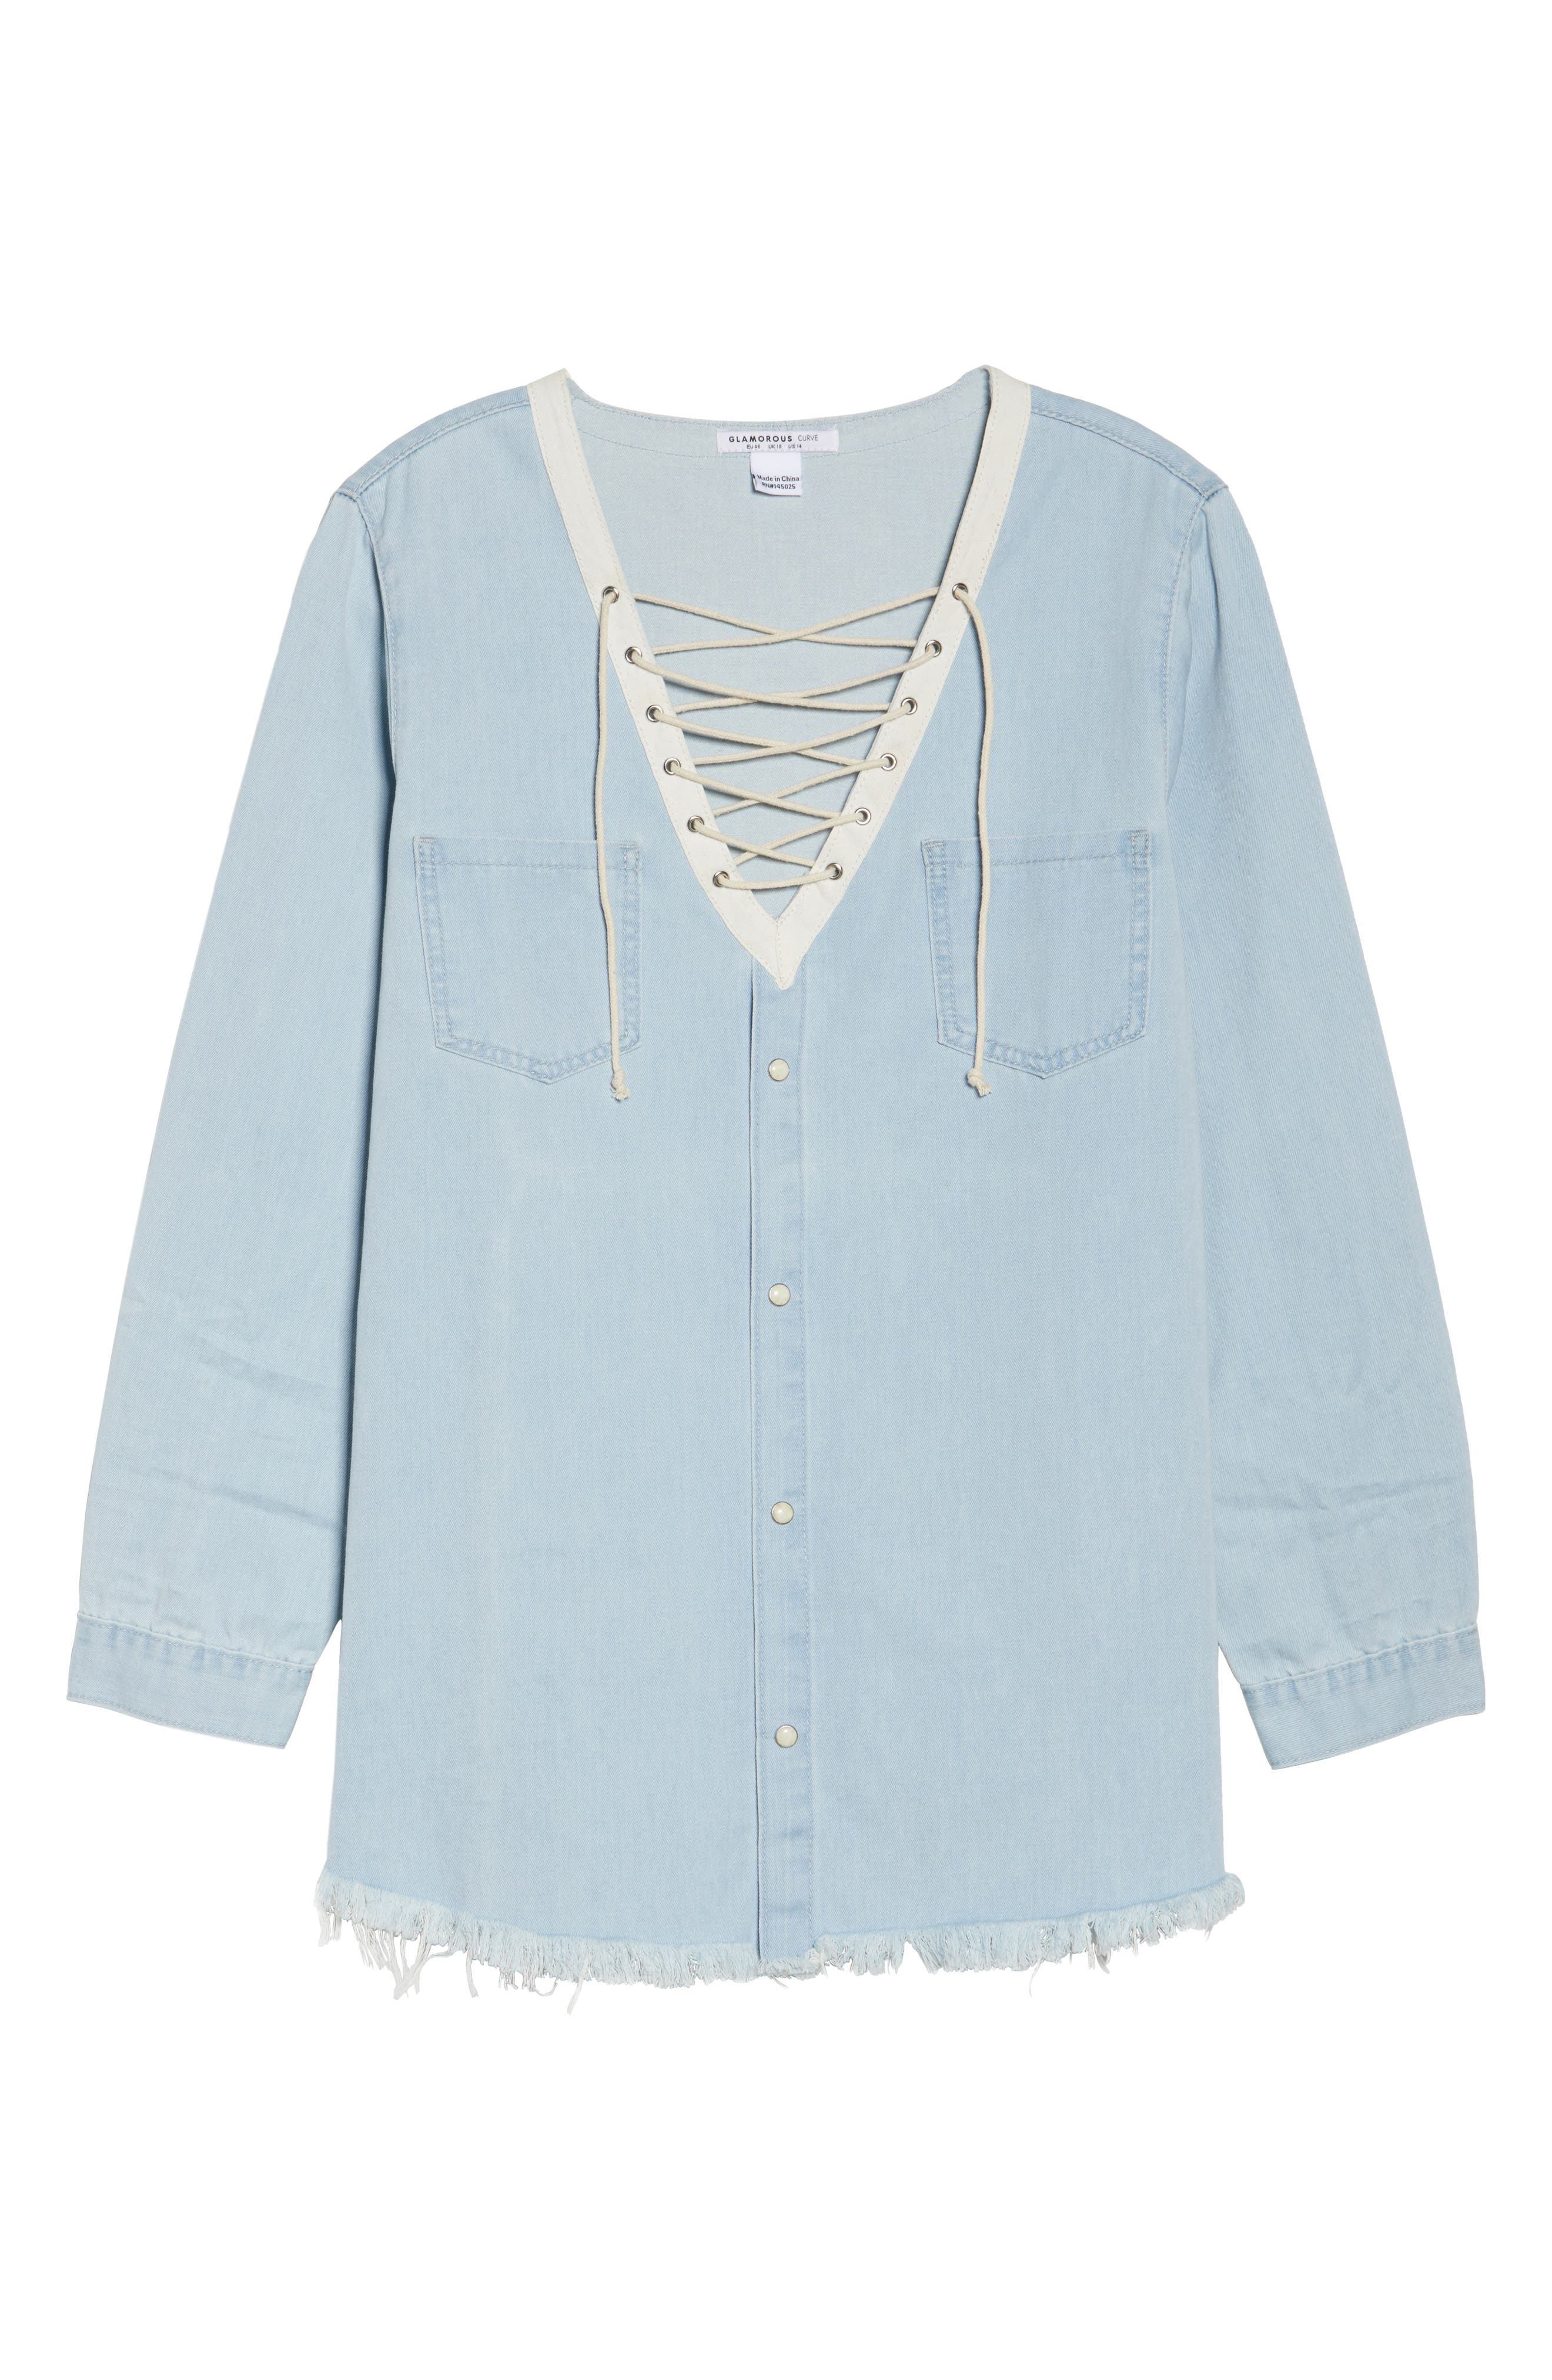 Lace-Up Chambray Top,                             Alternate thumbnail 6, color,                             400